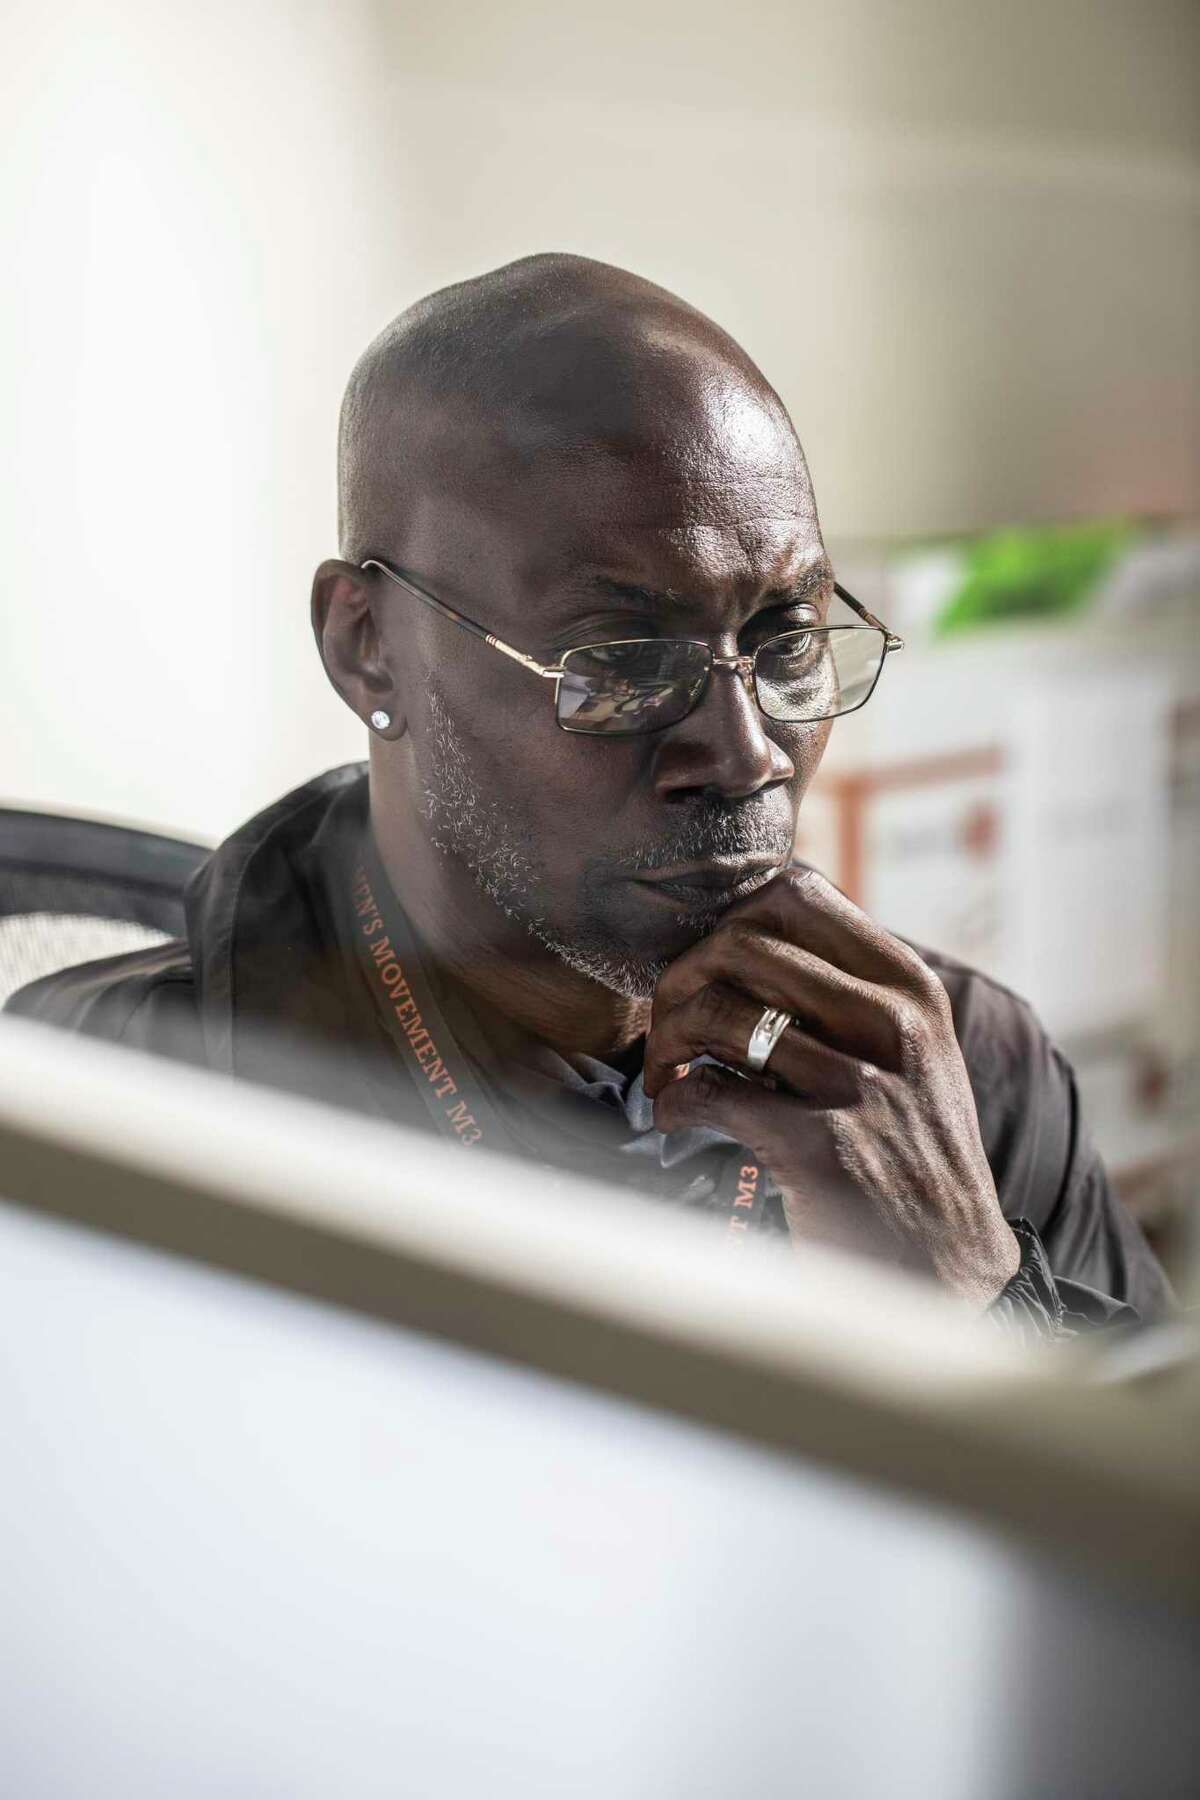 Charles Ryan, a case manager at the San Francisco Pretrial Diversion Project, works in his office cubicle in San Francisco, California Tuesday, July 6, 2021. Ryan, a San Francisco native, was jailed for 6 years while awaiting trial for a 2009 robbery and assault he did not commit.